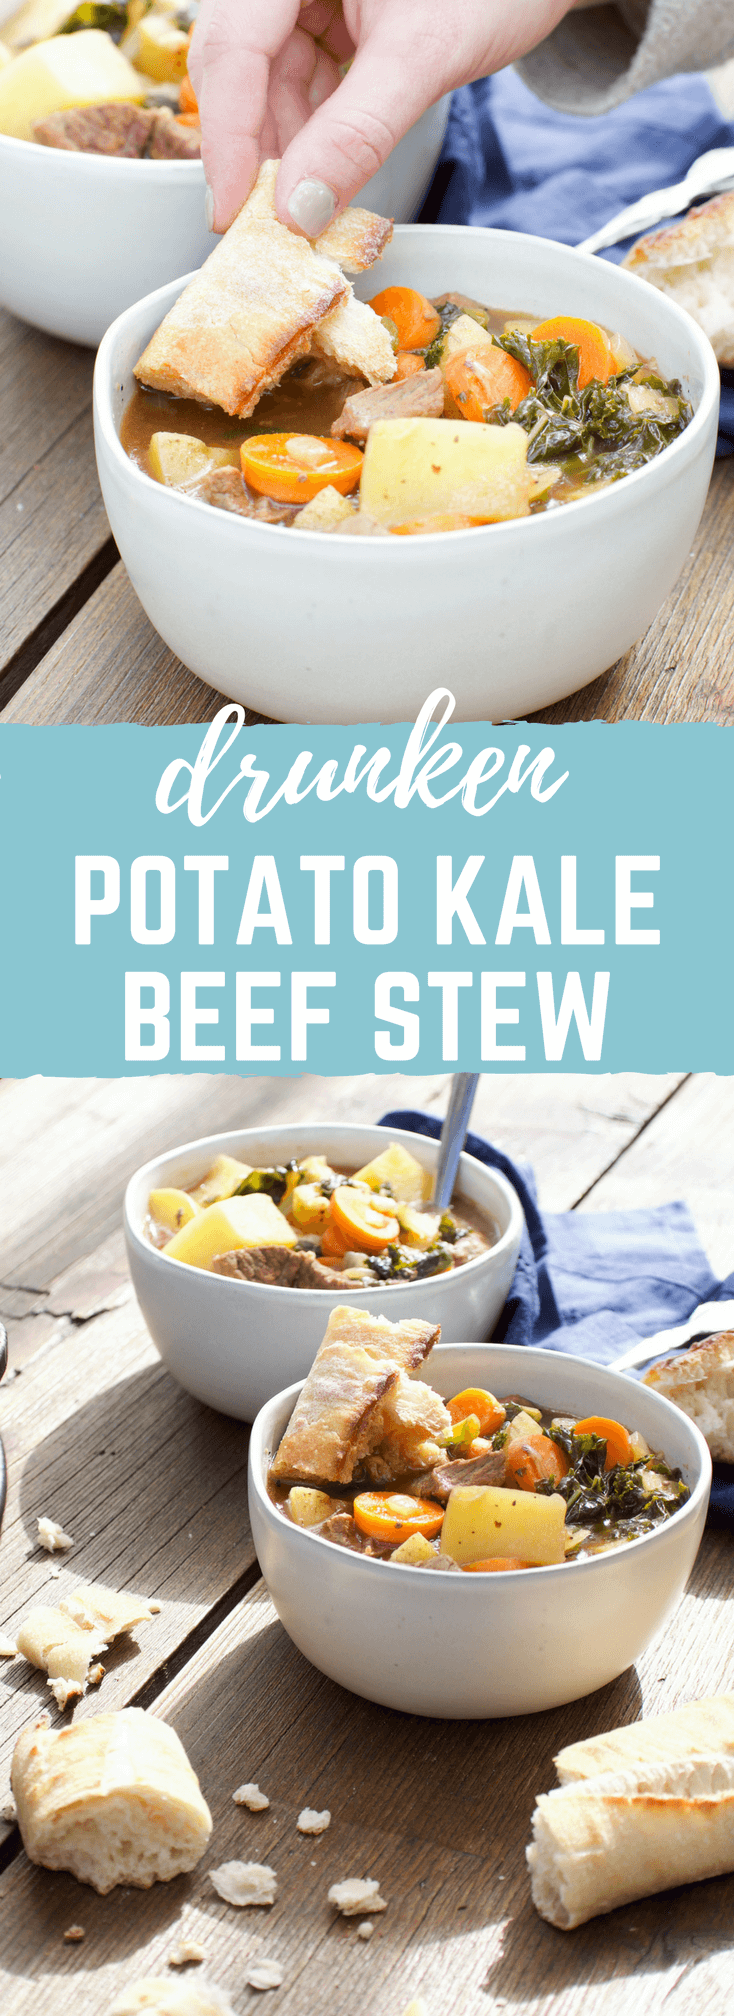 But my favorite part about grilling this Drunken Potato Kale Beef Stew?  Tossing a baguette on the grill to get it warm and crispy-- perfect for dipping into beer broth..